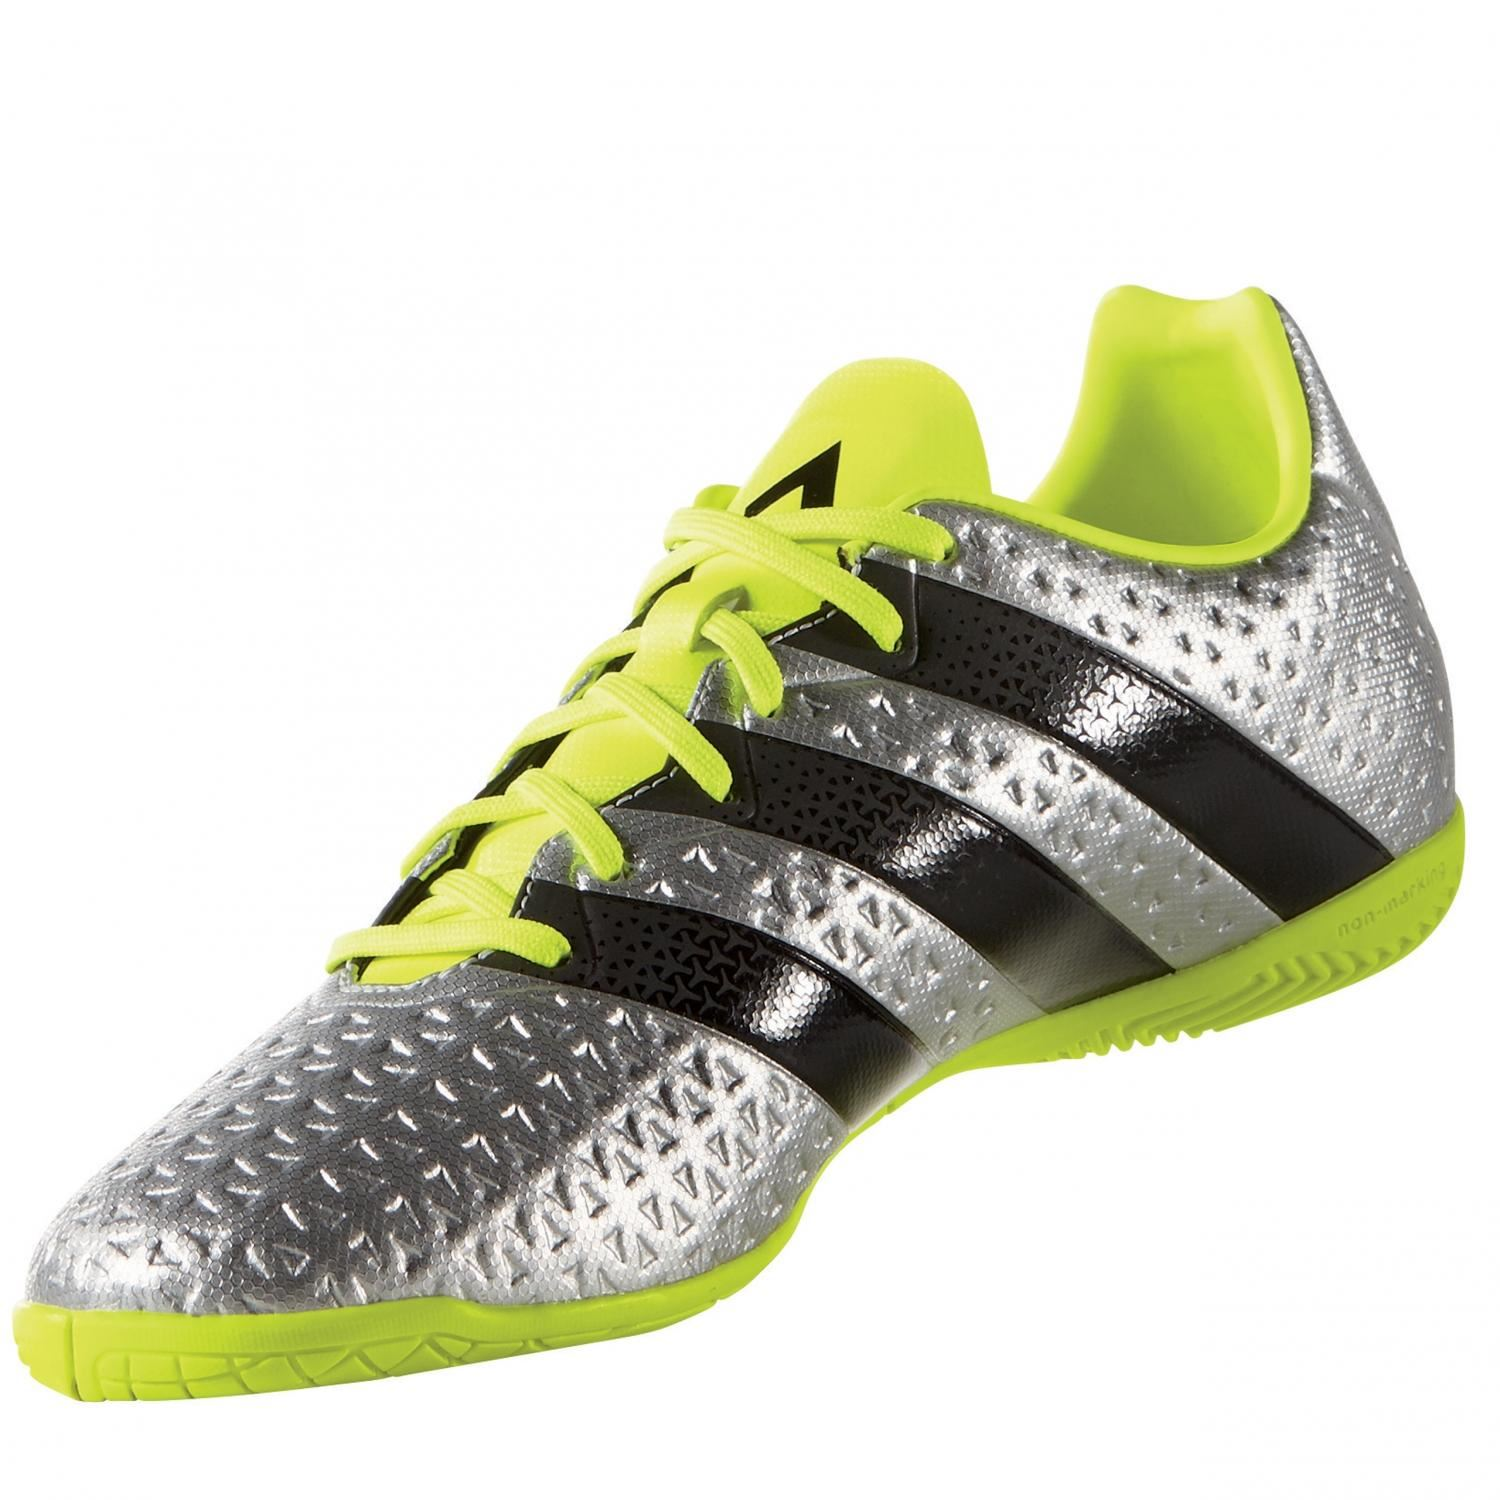 buy popular ae6fa fe389 Details about adidas Ace 16.4 Indoor Football Trainers Mens Silver/Yellow  Soccer Futsal Shoes